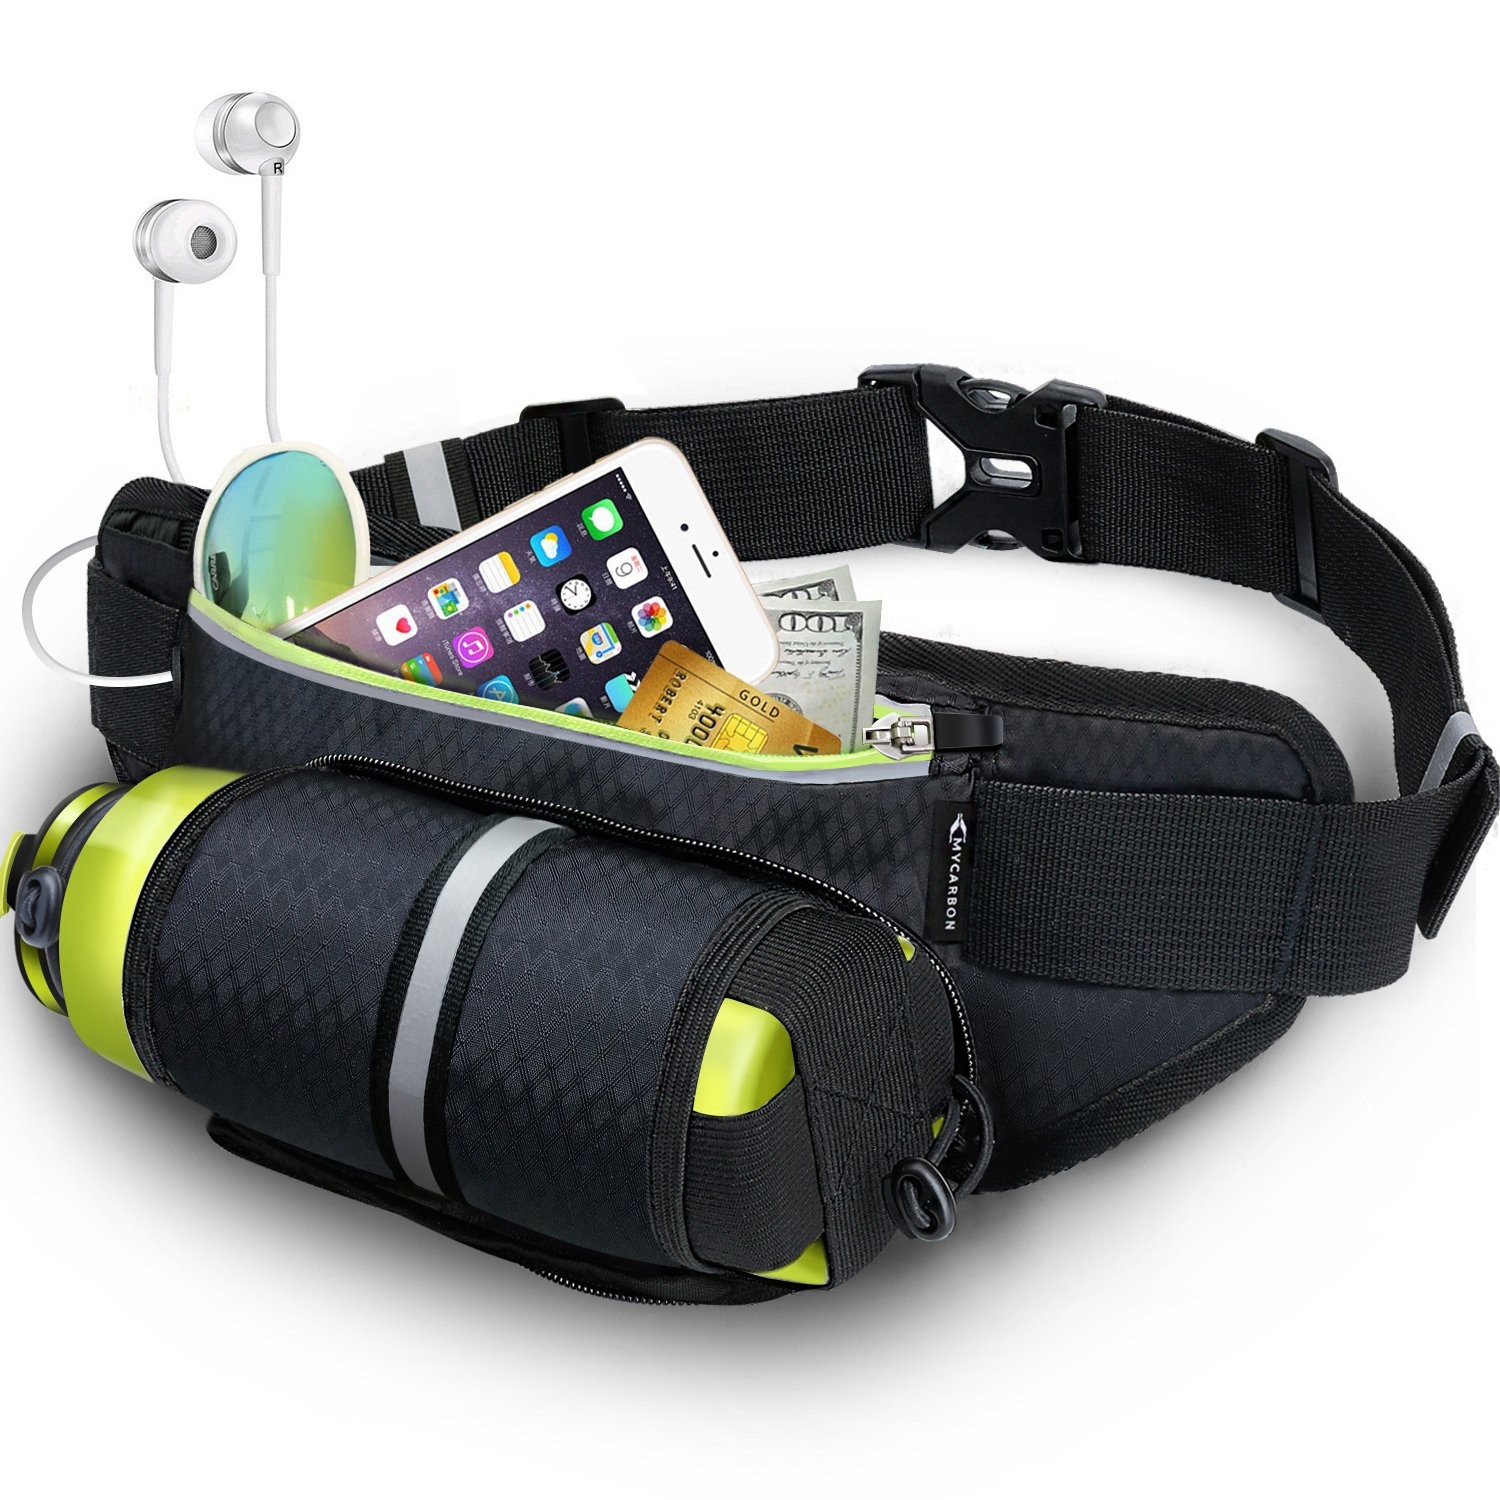 Fanny Pack MYCARBON Waist Pack with Water Bottle Holder,Waterproof Running Belt for Men Women,Fits IPhone 8Plus Galaxy S8 Note 8,Reflective Hydration Belt for Running Hiking Travelling-Black Fanny Bag